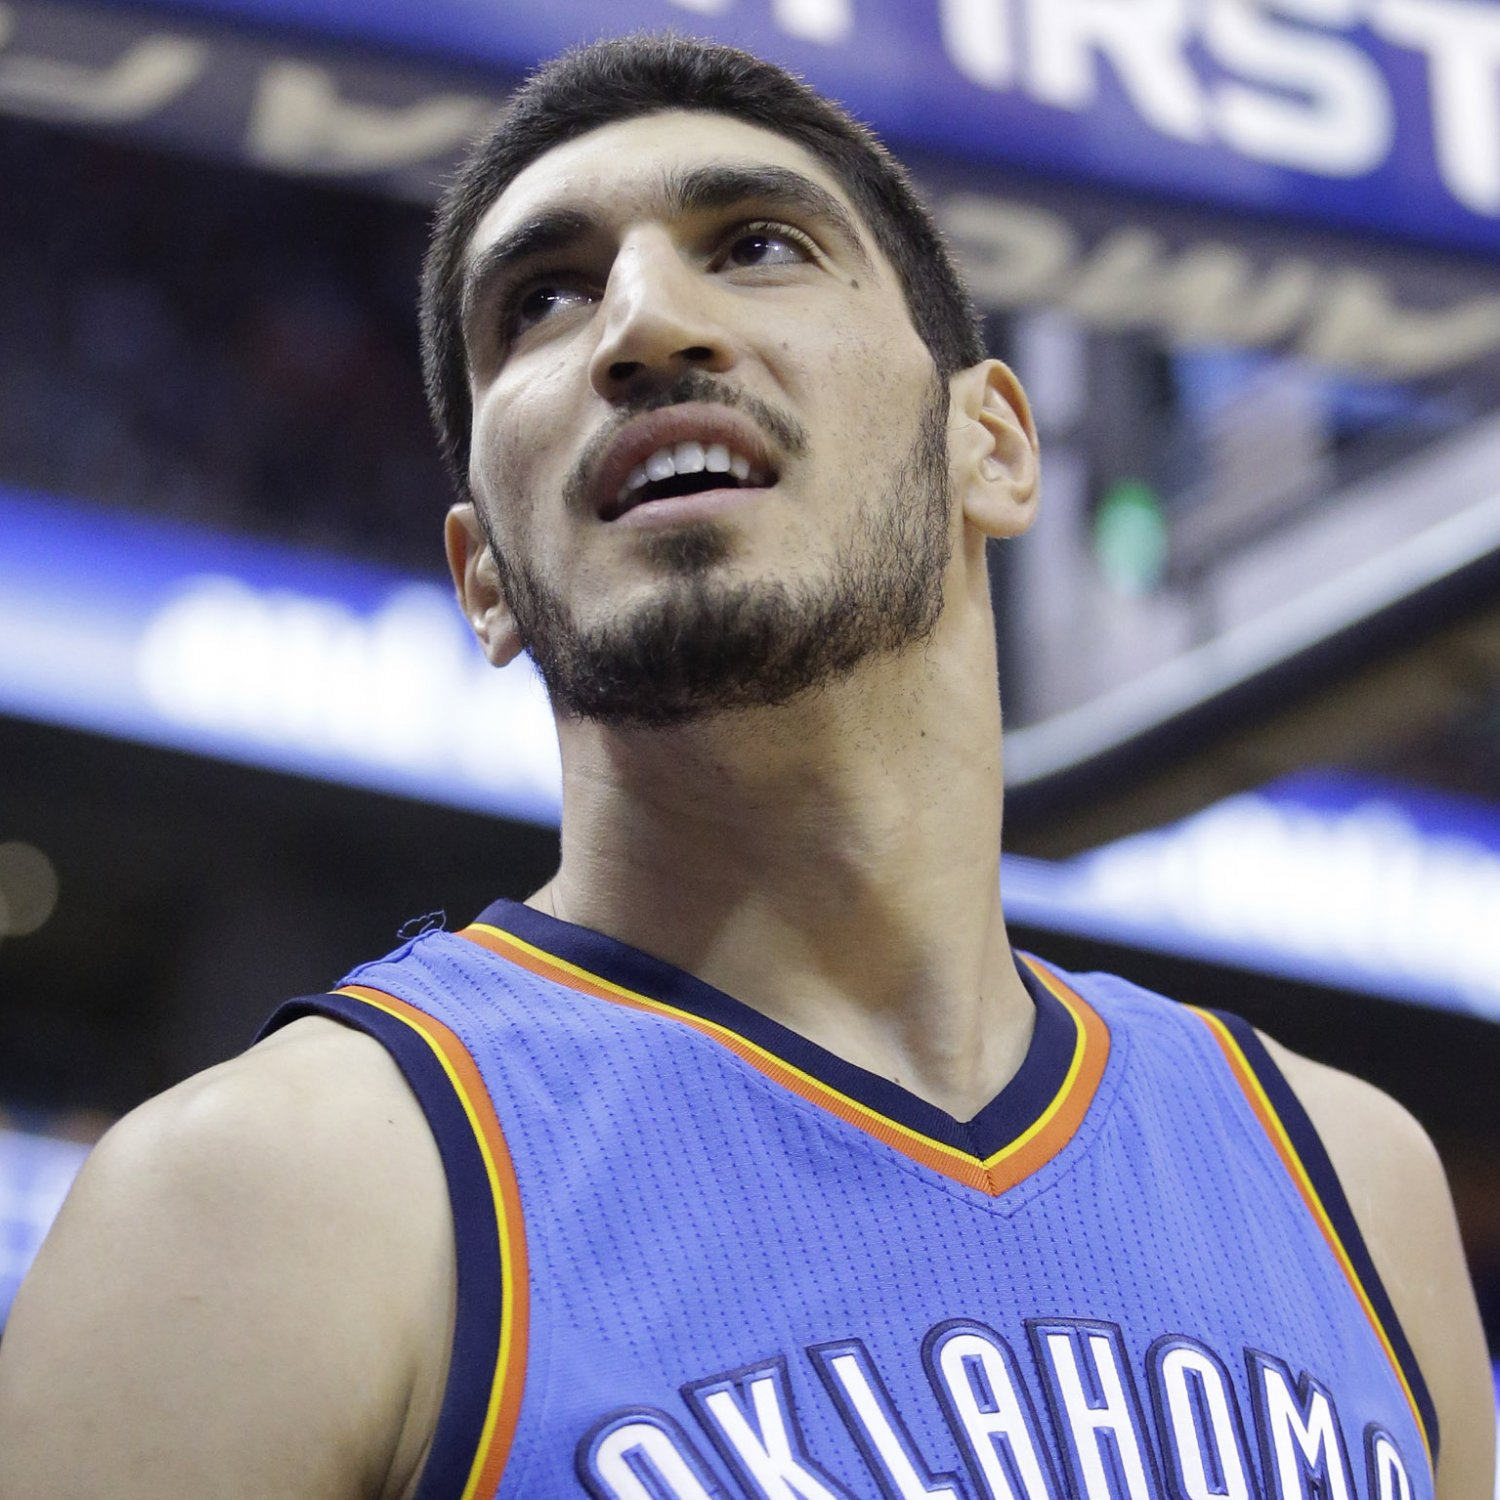 Blazers Kanter: Enes Kanter's Blazers Offer Sheet Matched By Thunder